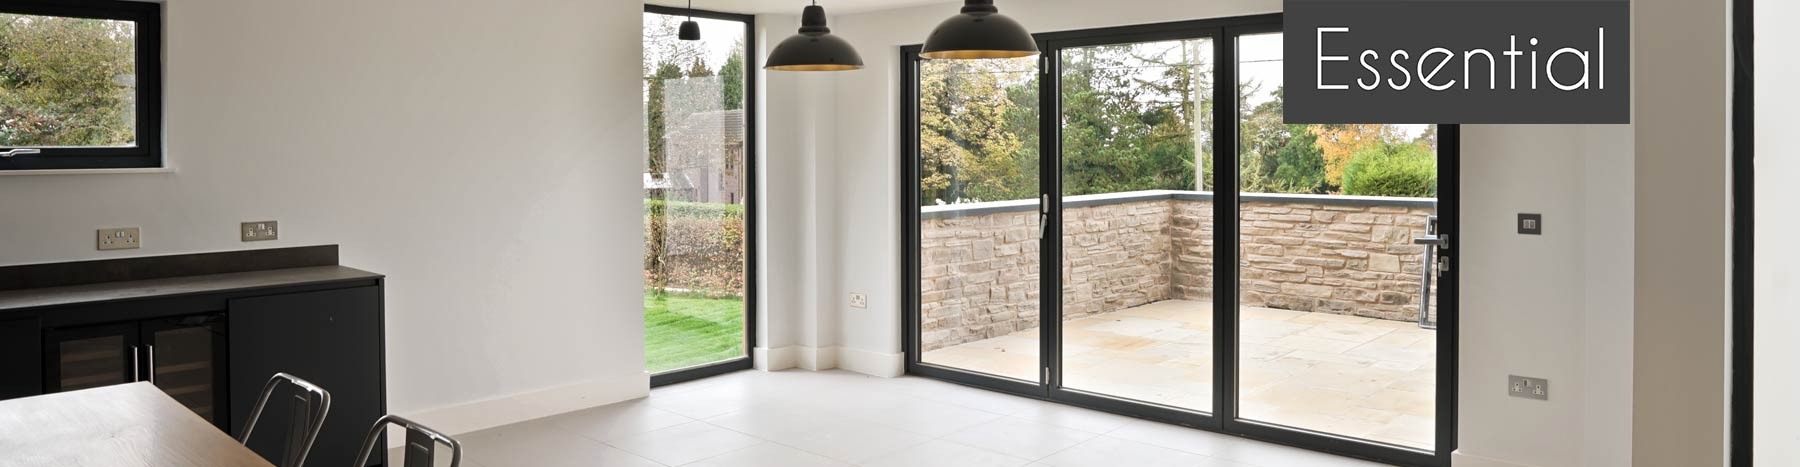 Essential Bi-fold door banner